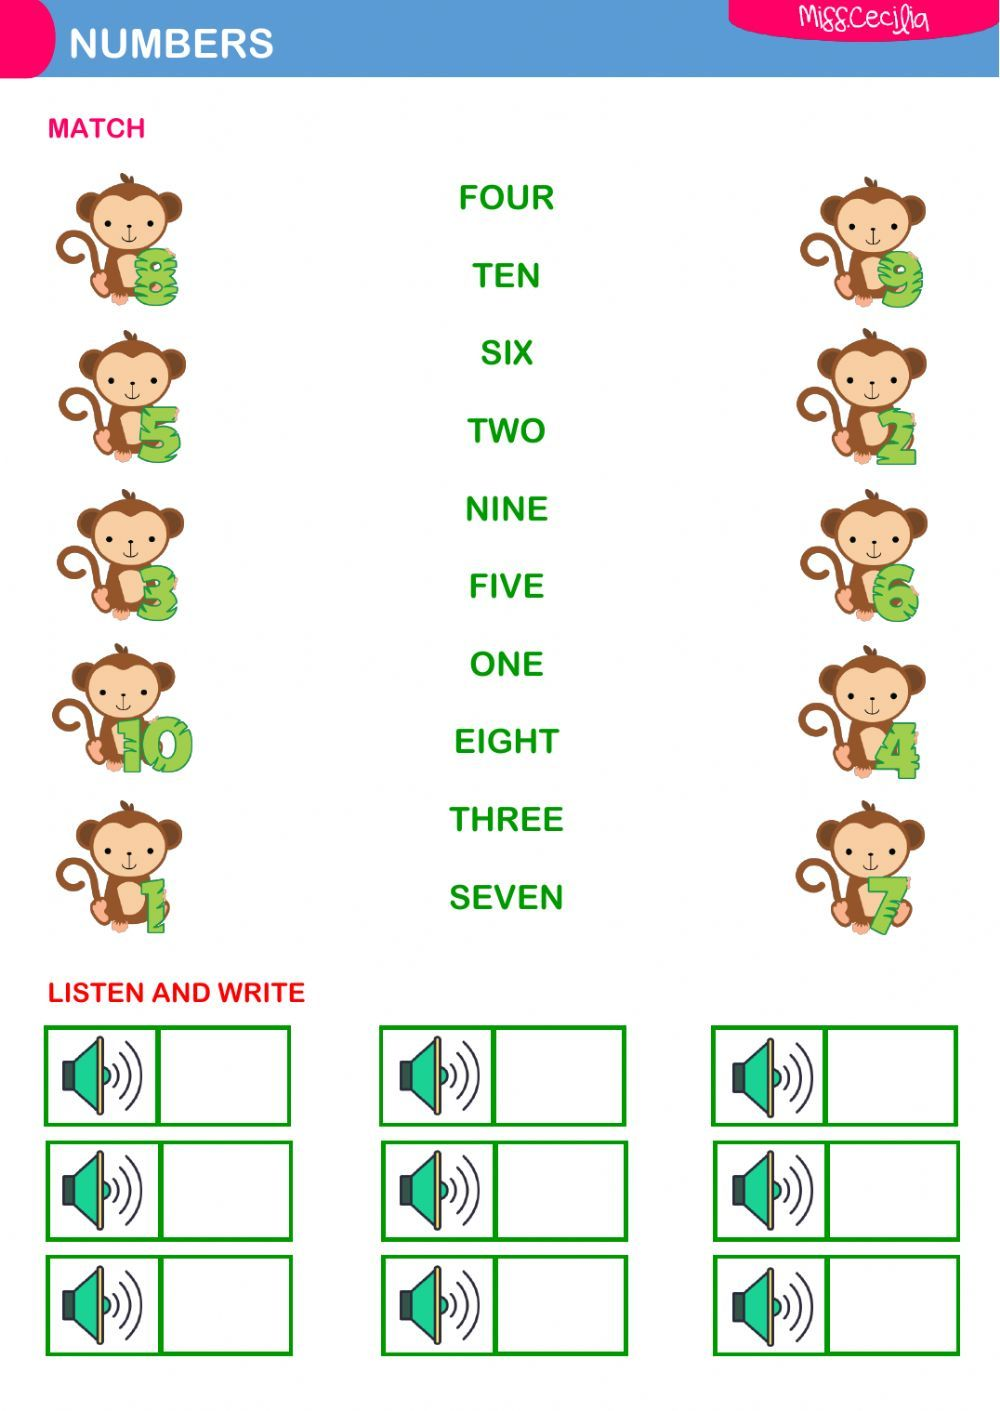 The Numbers Interactive And Downloadable Worksheet You Can Do The Exercises Online O English Worksheets For Kids Kids Math Worksheets Math Addition Worksheets